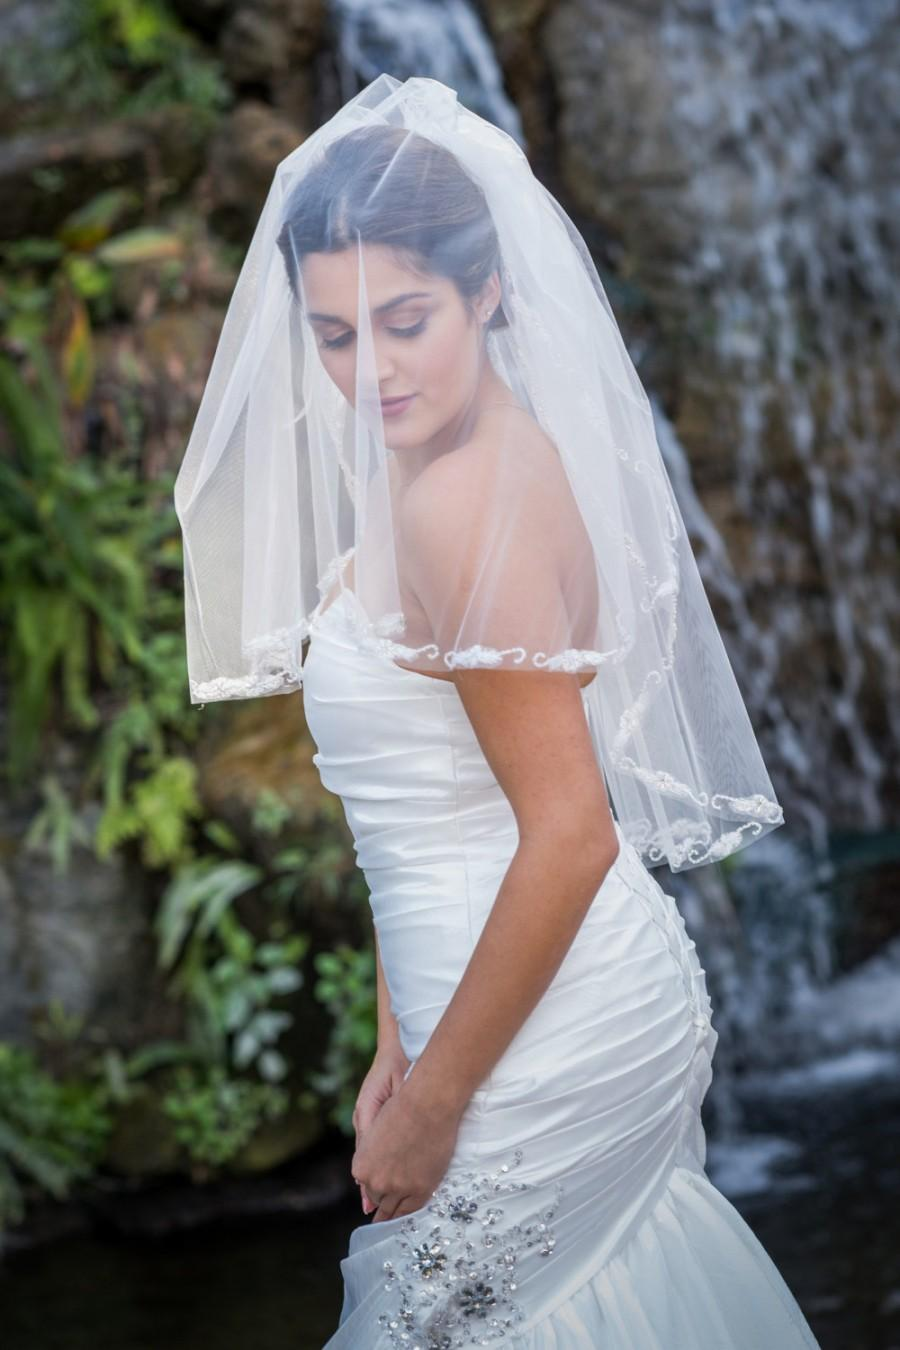 Mariage - Elbow Length Two Tier Lace Veil w/ Pearls and Beading